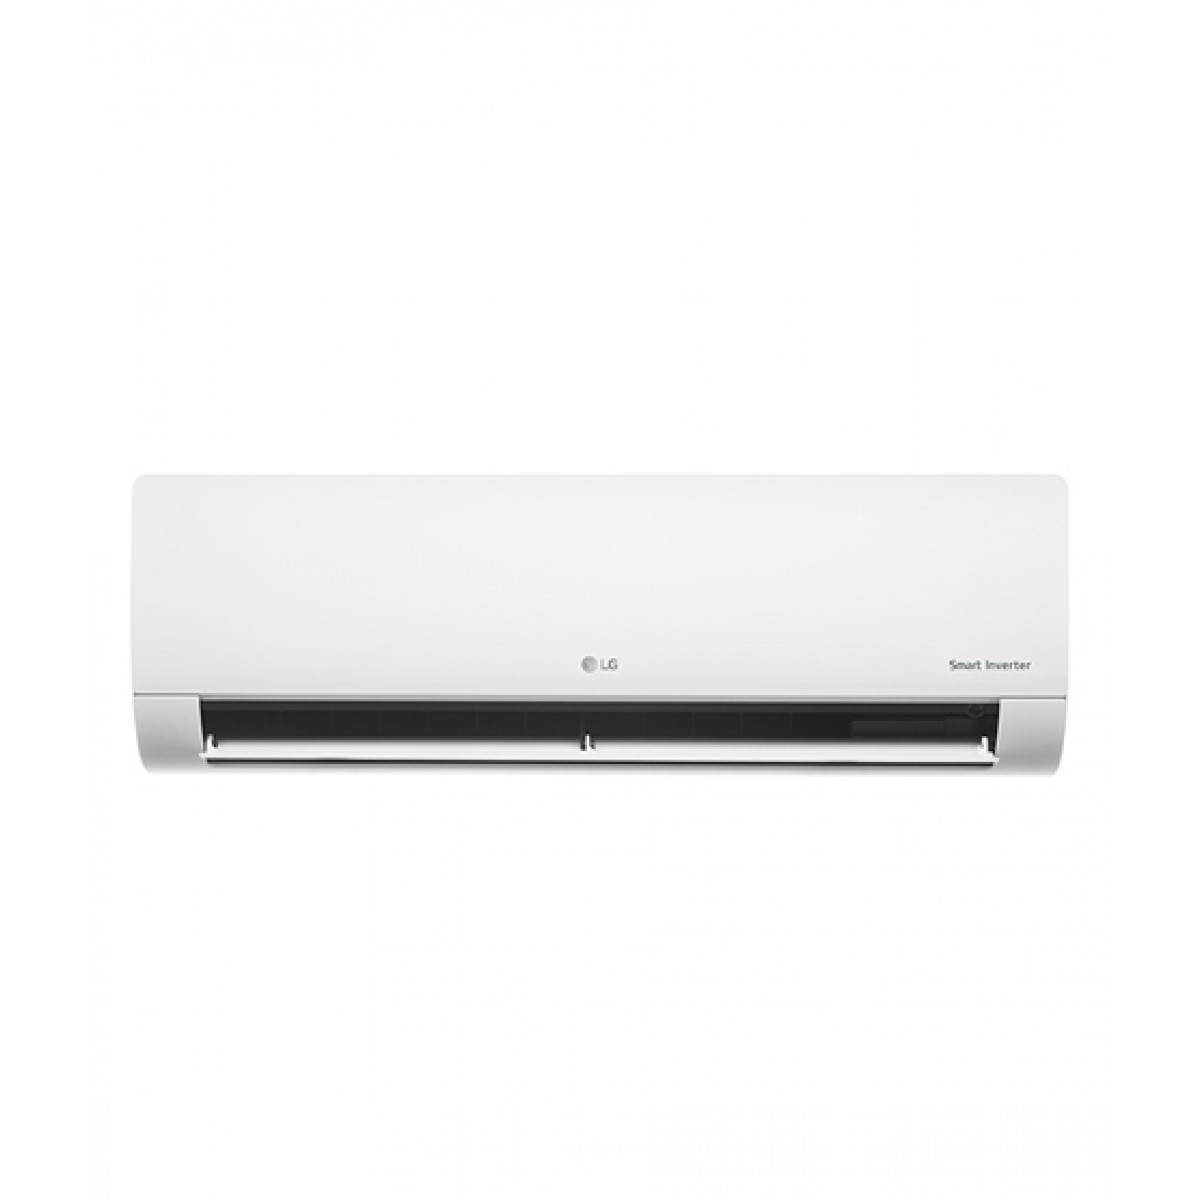 LG Dual Inverter Split Air Conditioner Heat and Cool 1 5 Ton (NT187SK3)